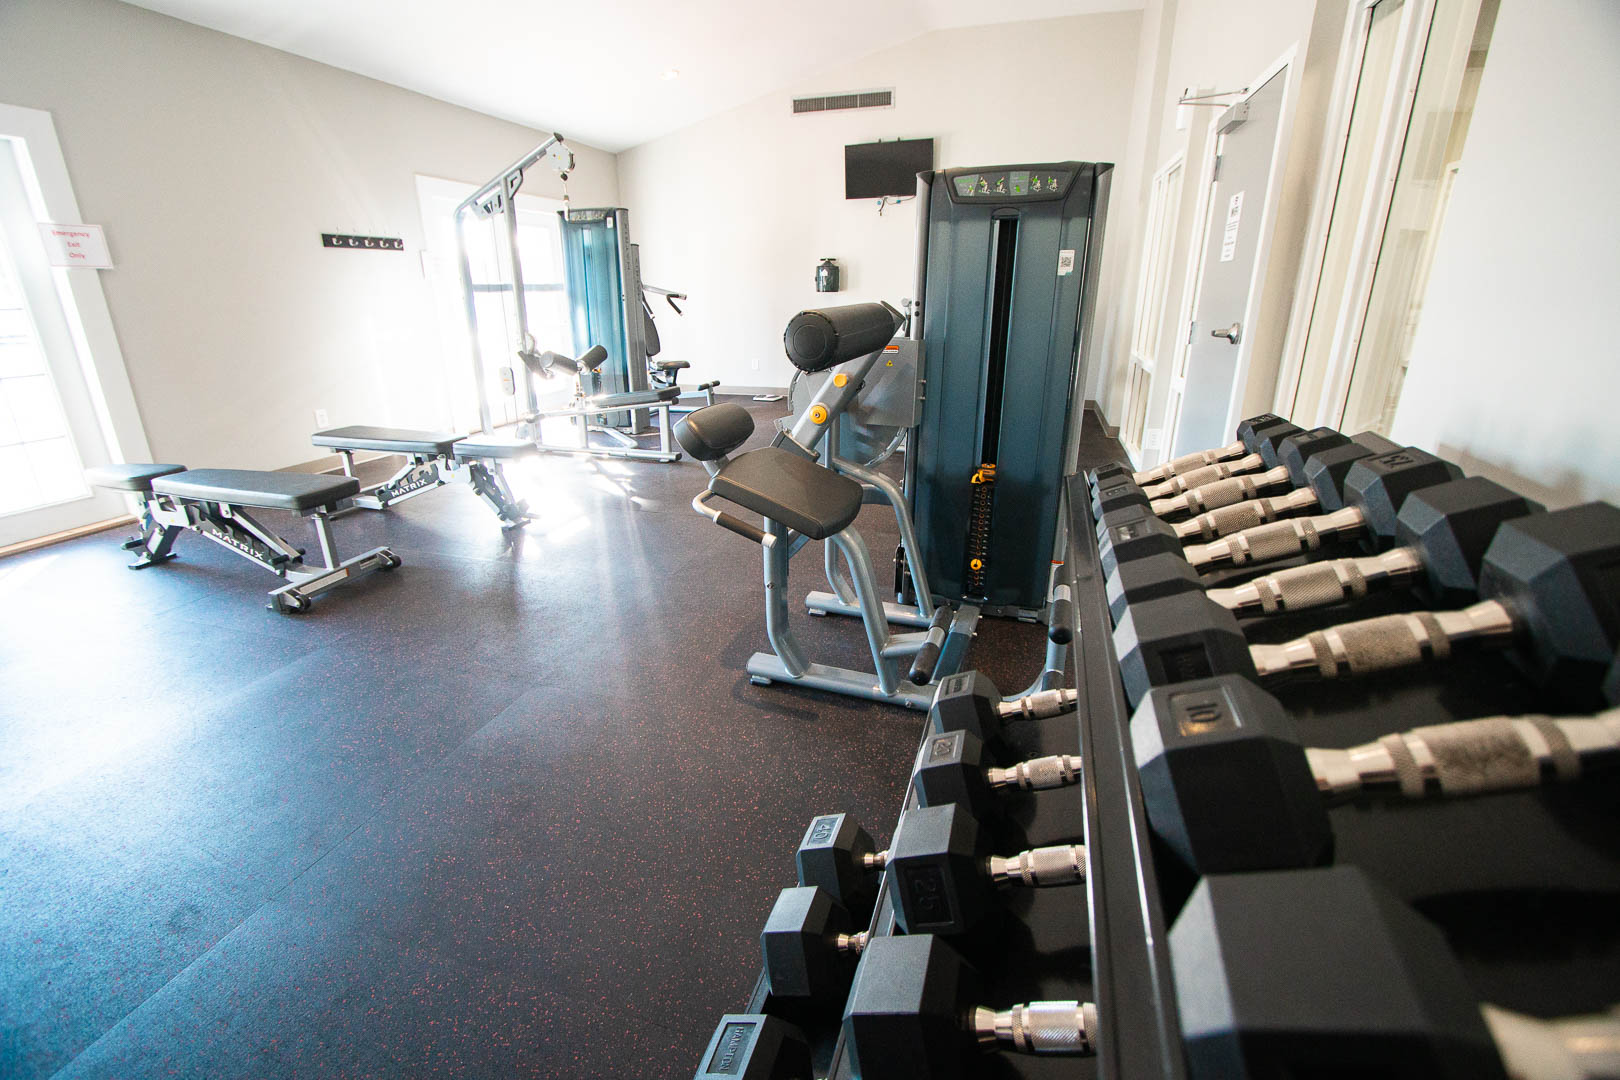 A fully equipped exercise room at VRI's Sandcastle Cove in New Bern, North Carolina.